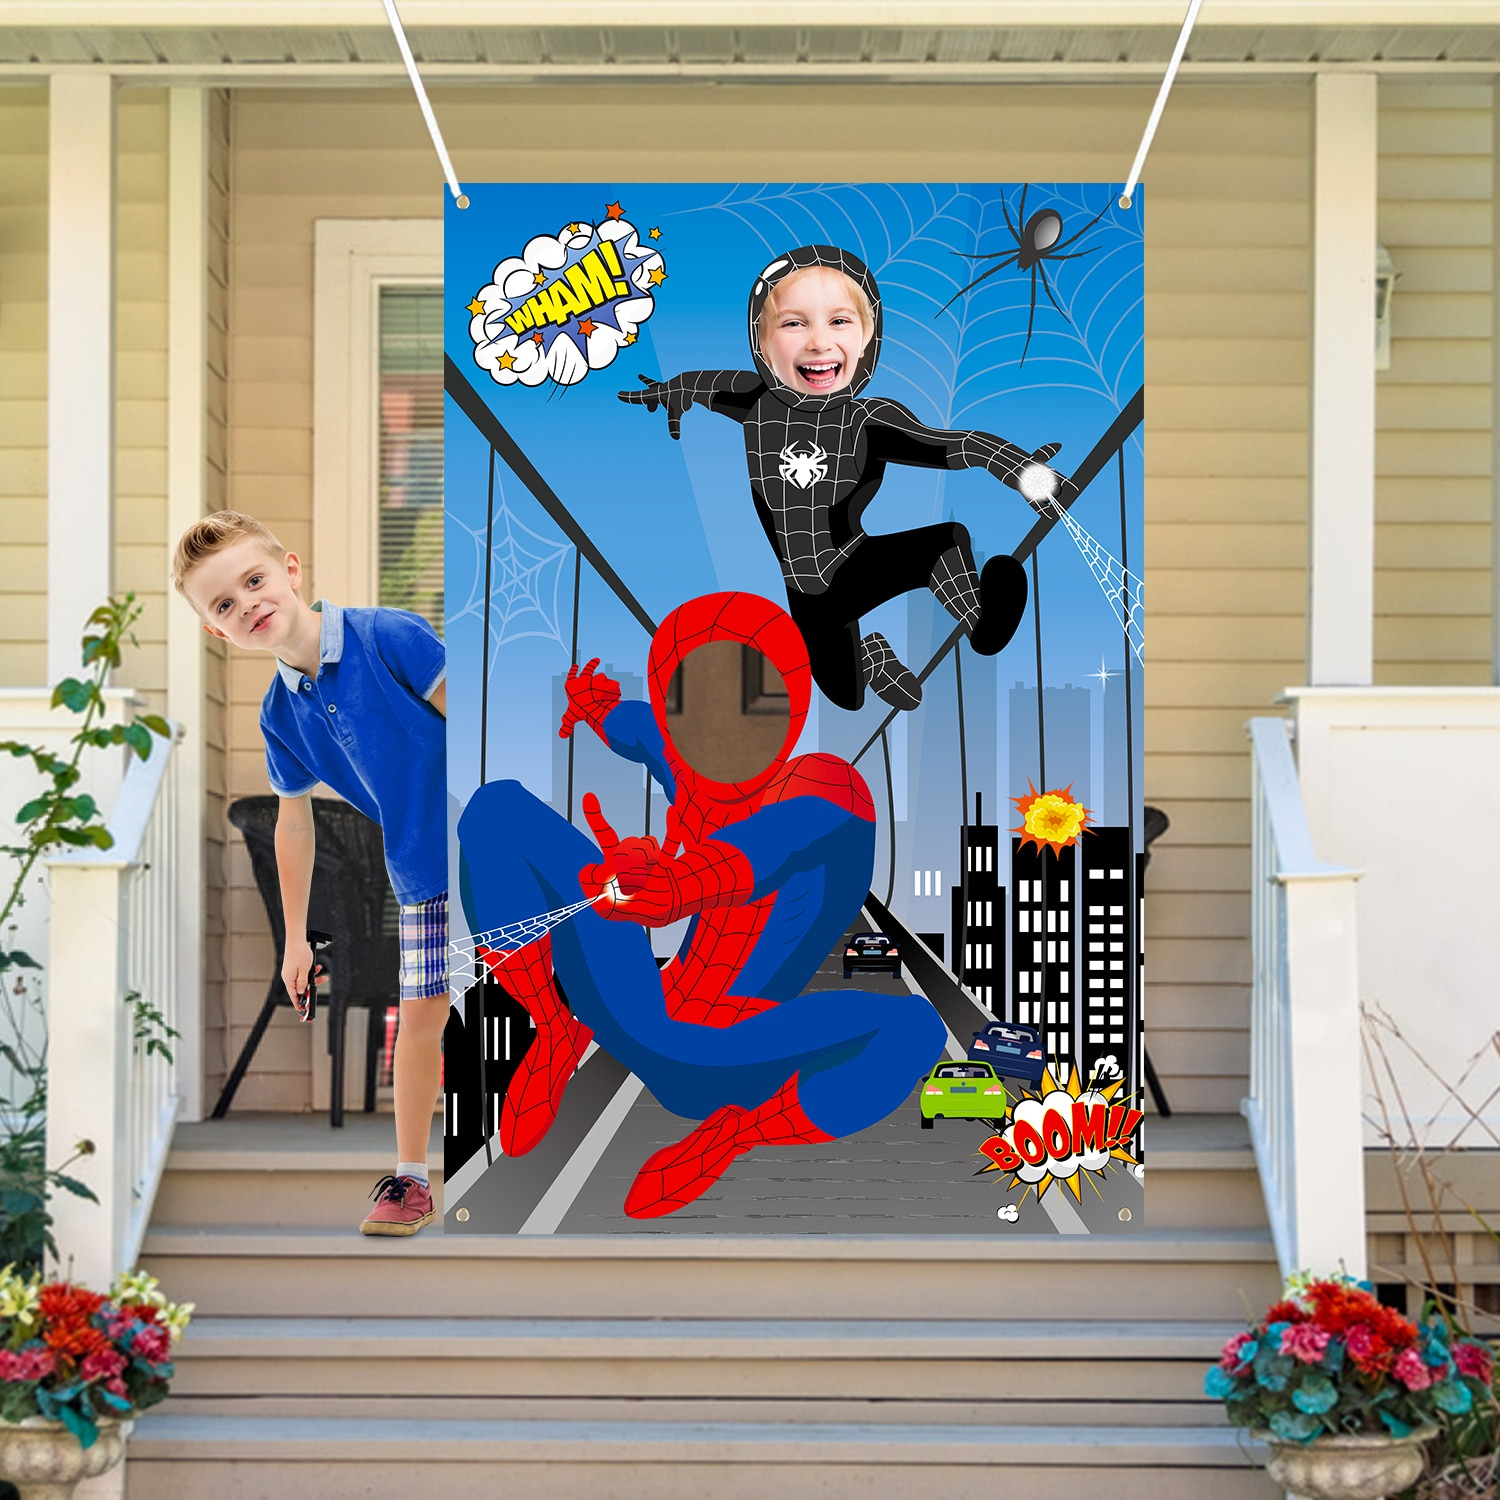 Spider Photo man Door Banner Large Fabric Face Photography Background Hero Superhero Theme Party Supplies for bKids